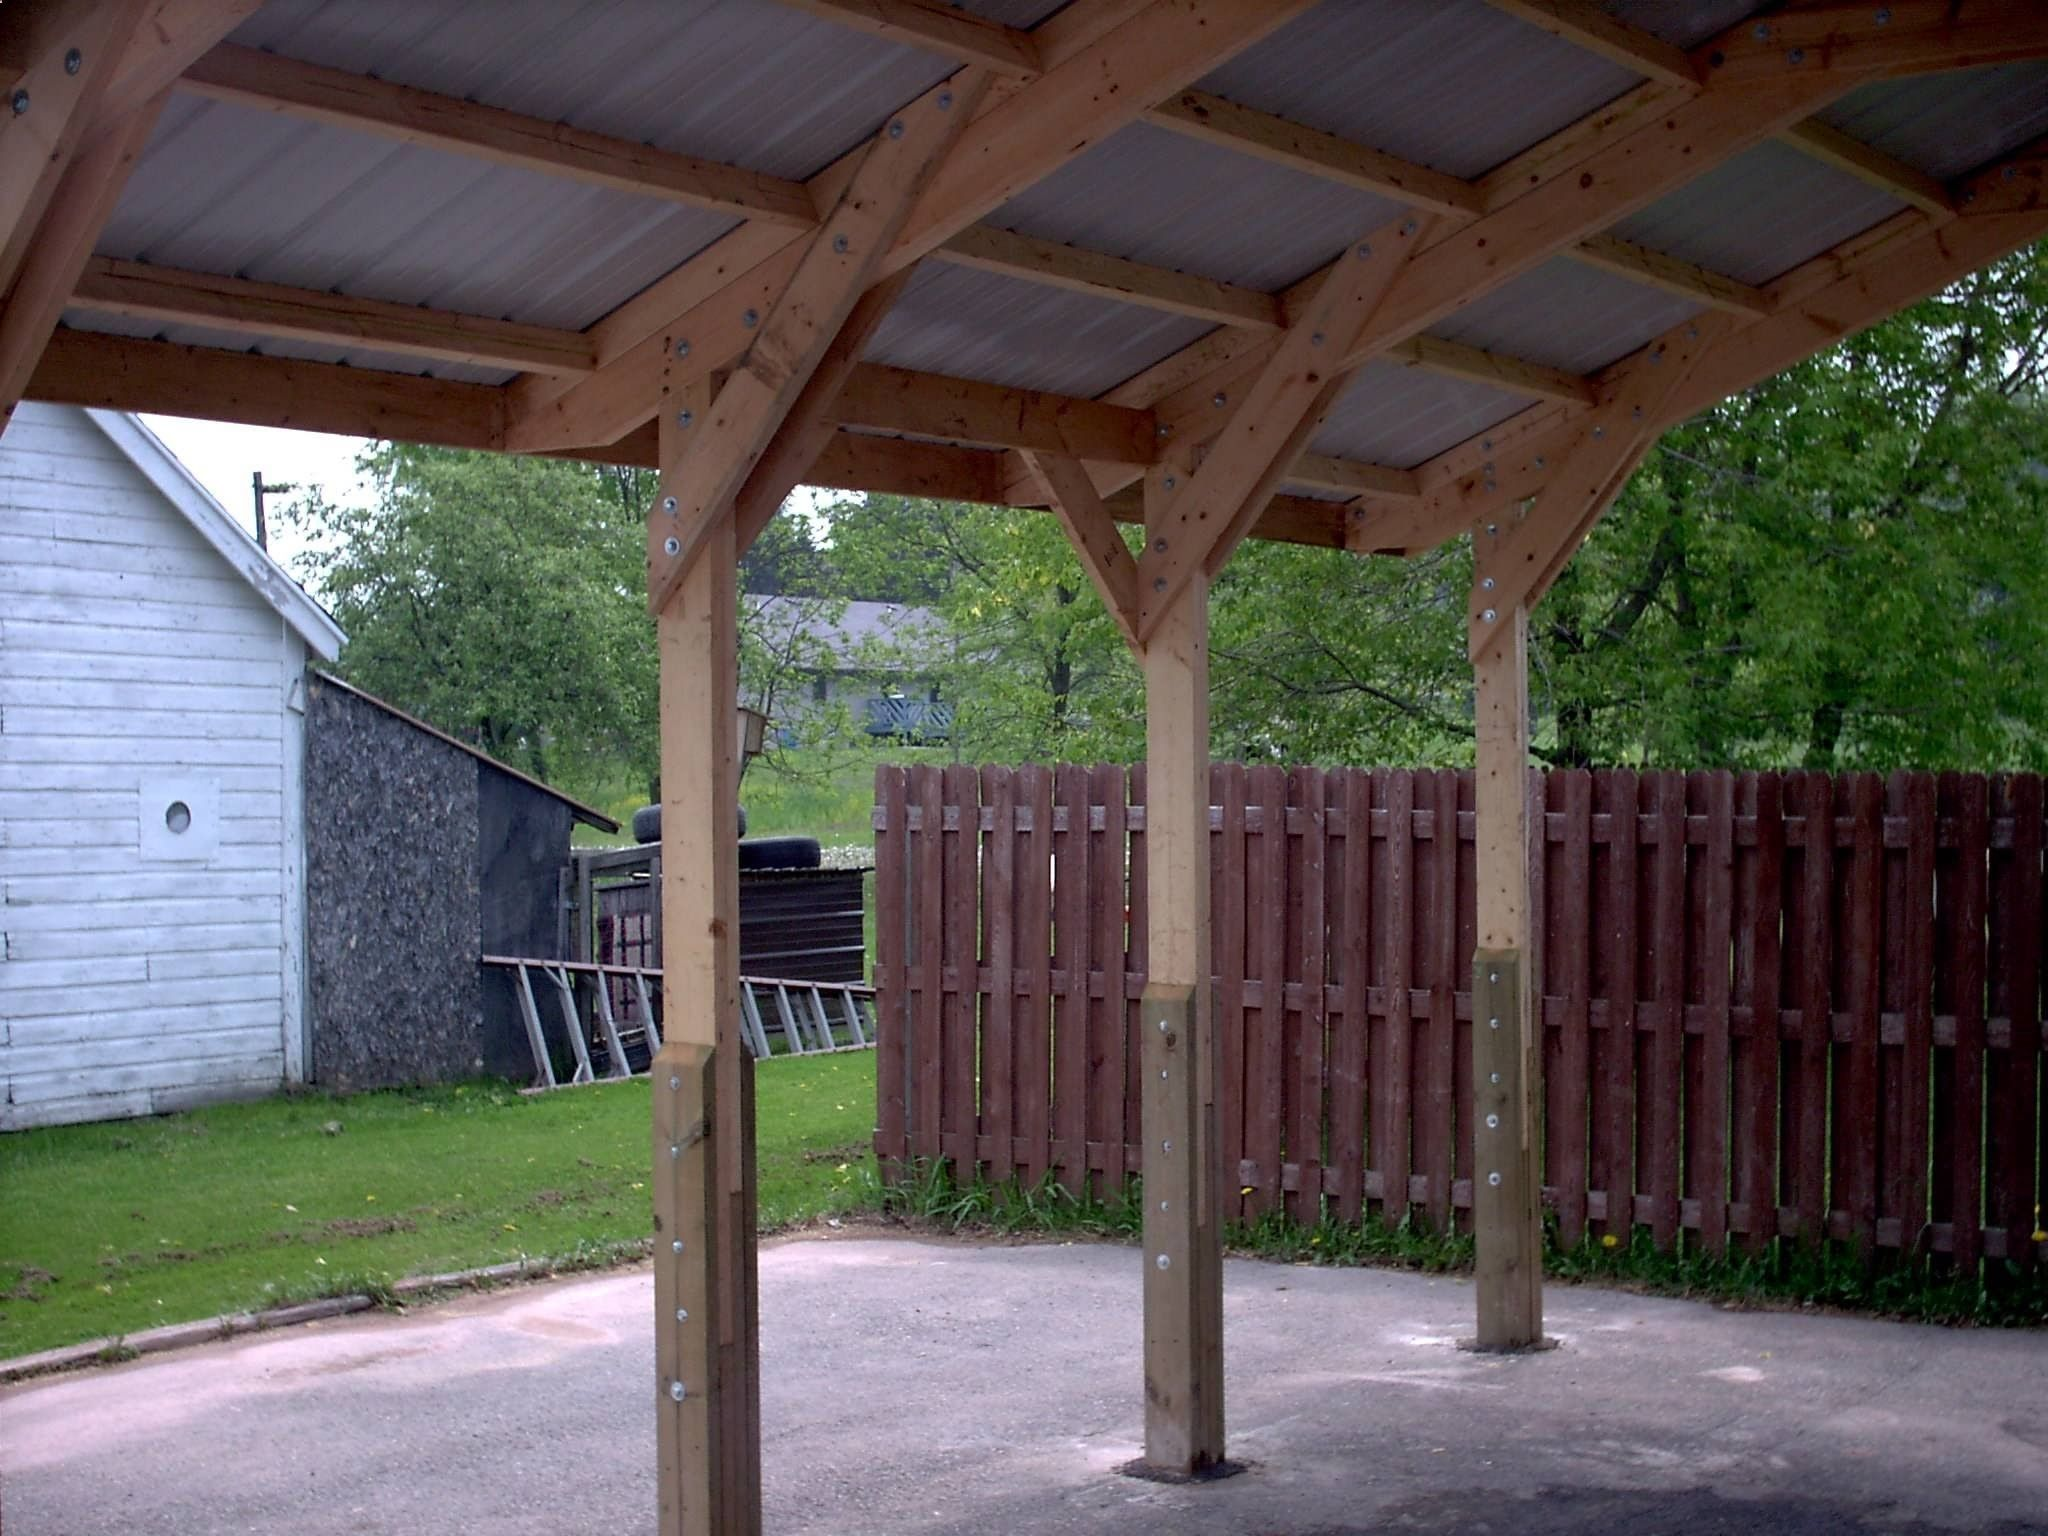 Scenic Wood Carport Builders Saint Louis For Car Engrossing